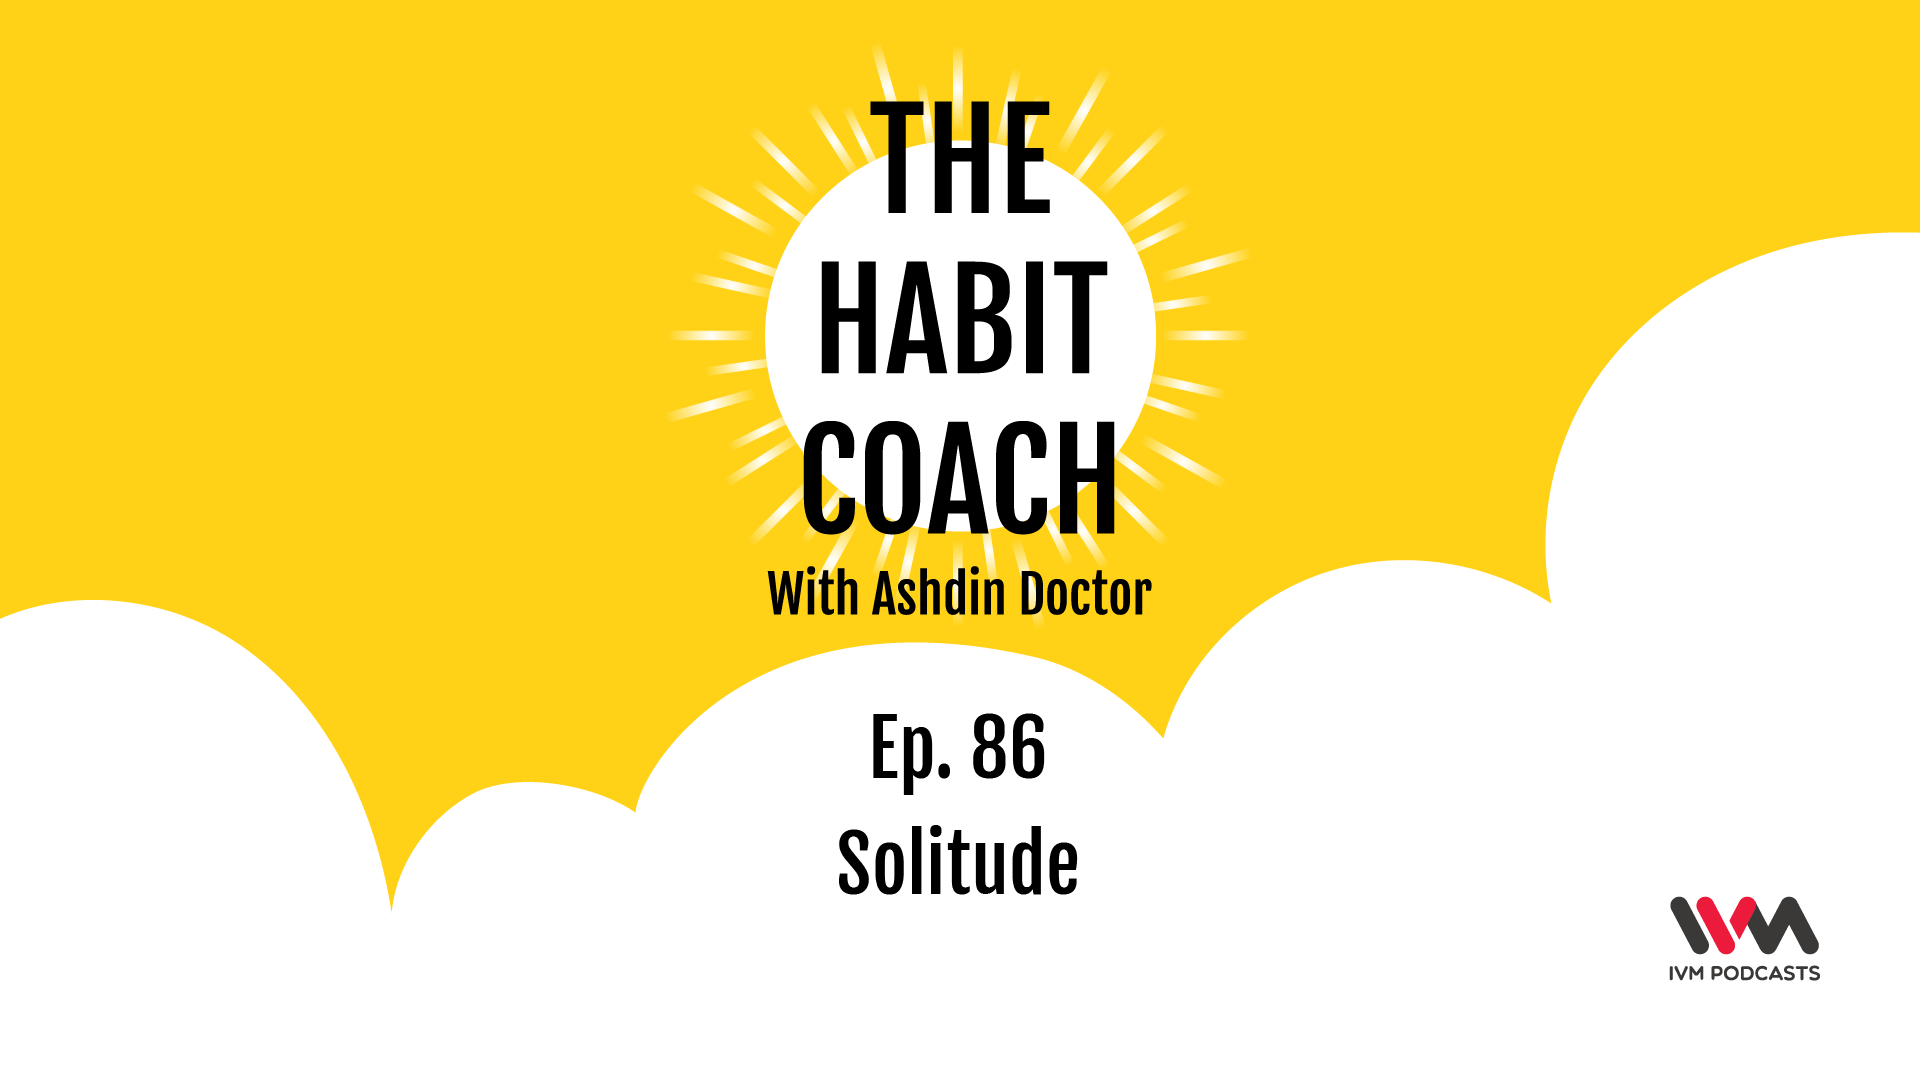 TheHabitCoachEpisode86.png